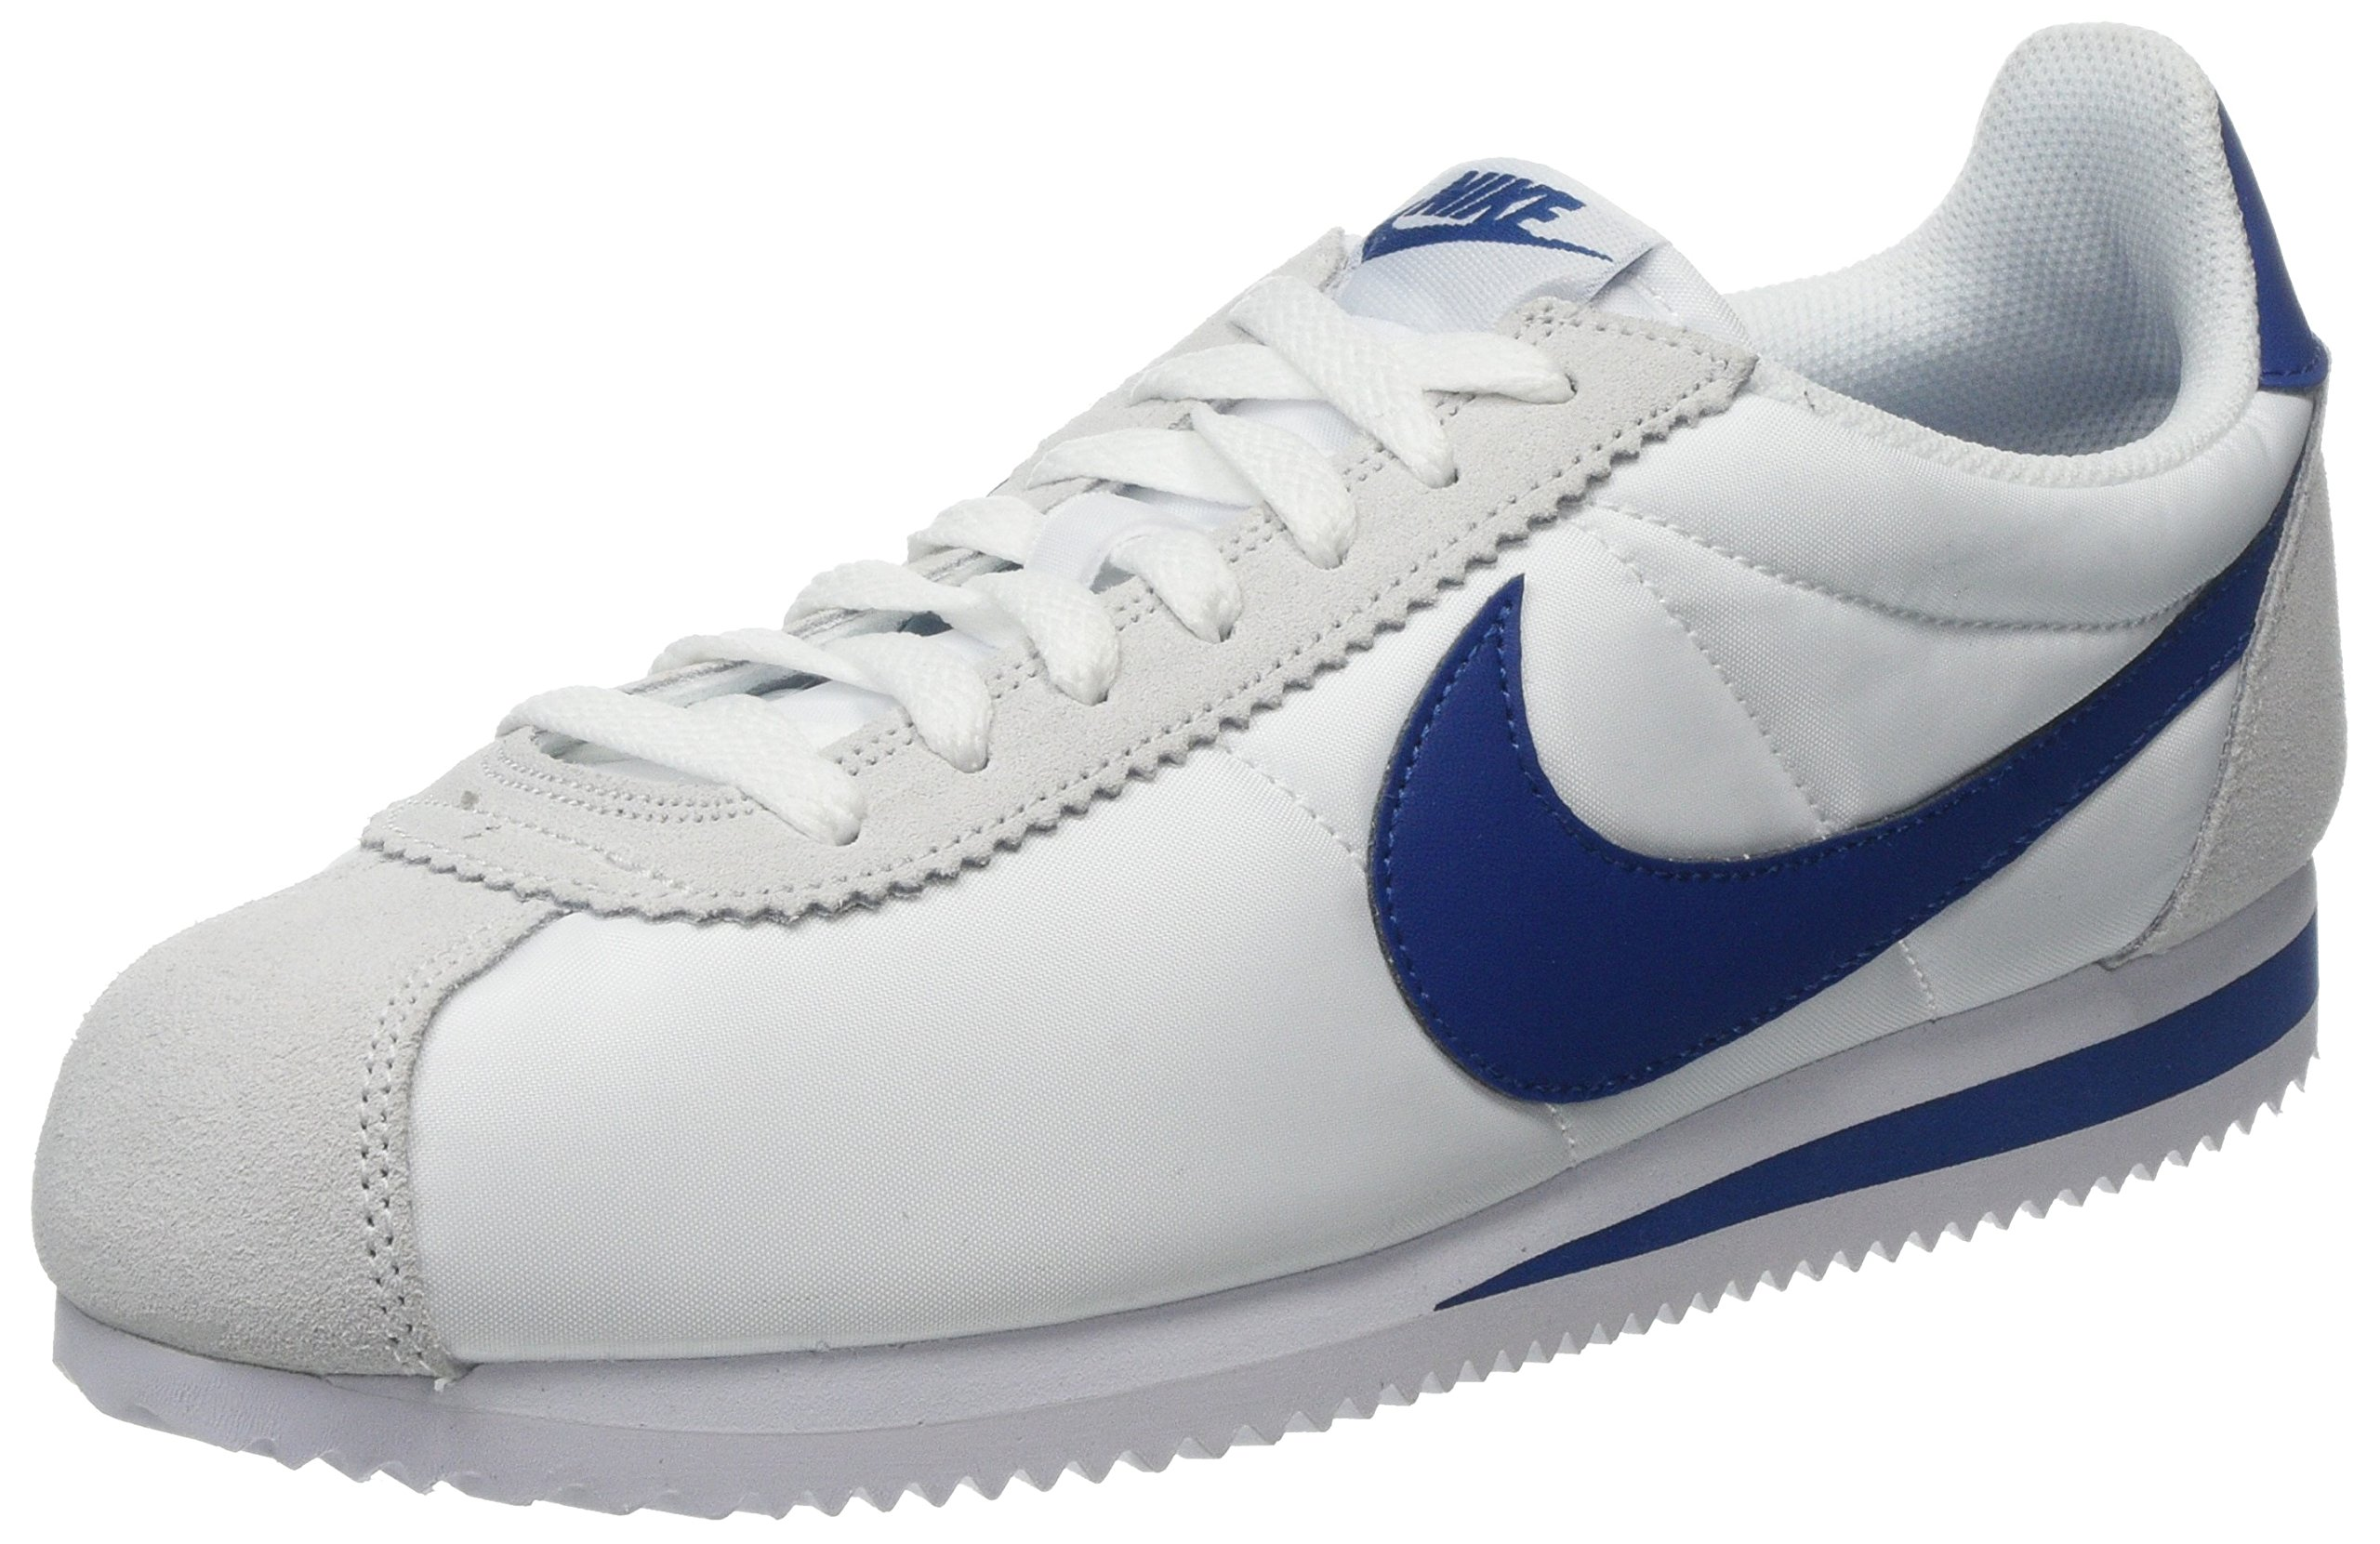 cheap for discount 730c1 ab692 Galleon - Nike Mens Classic Cortez Nylon Fashion Sneakers (11.5)